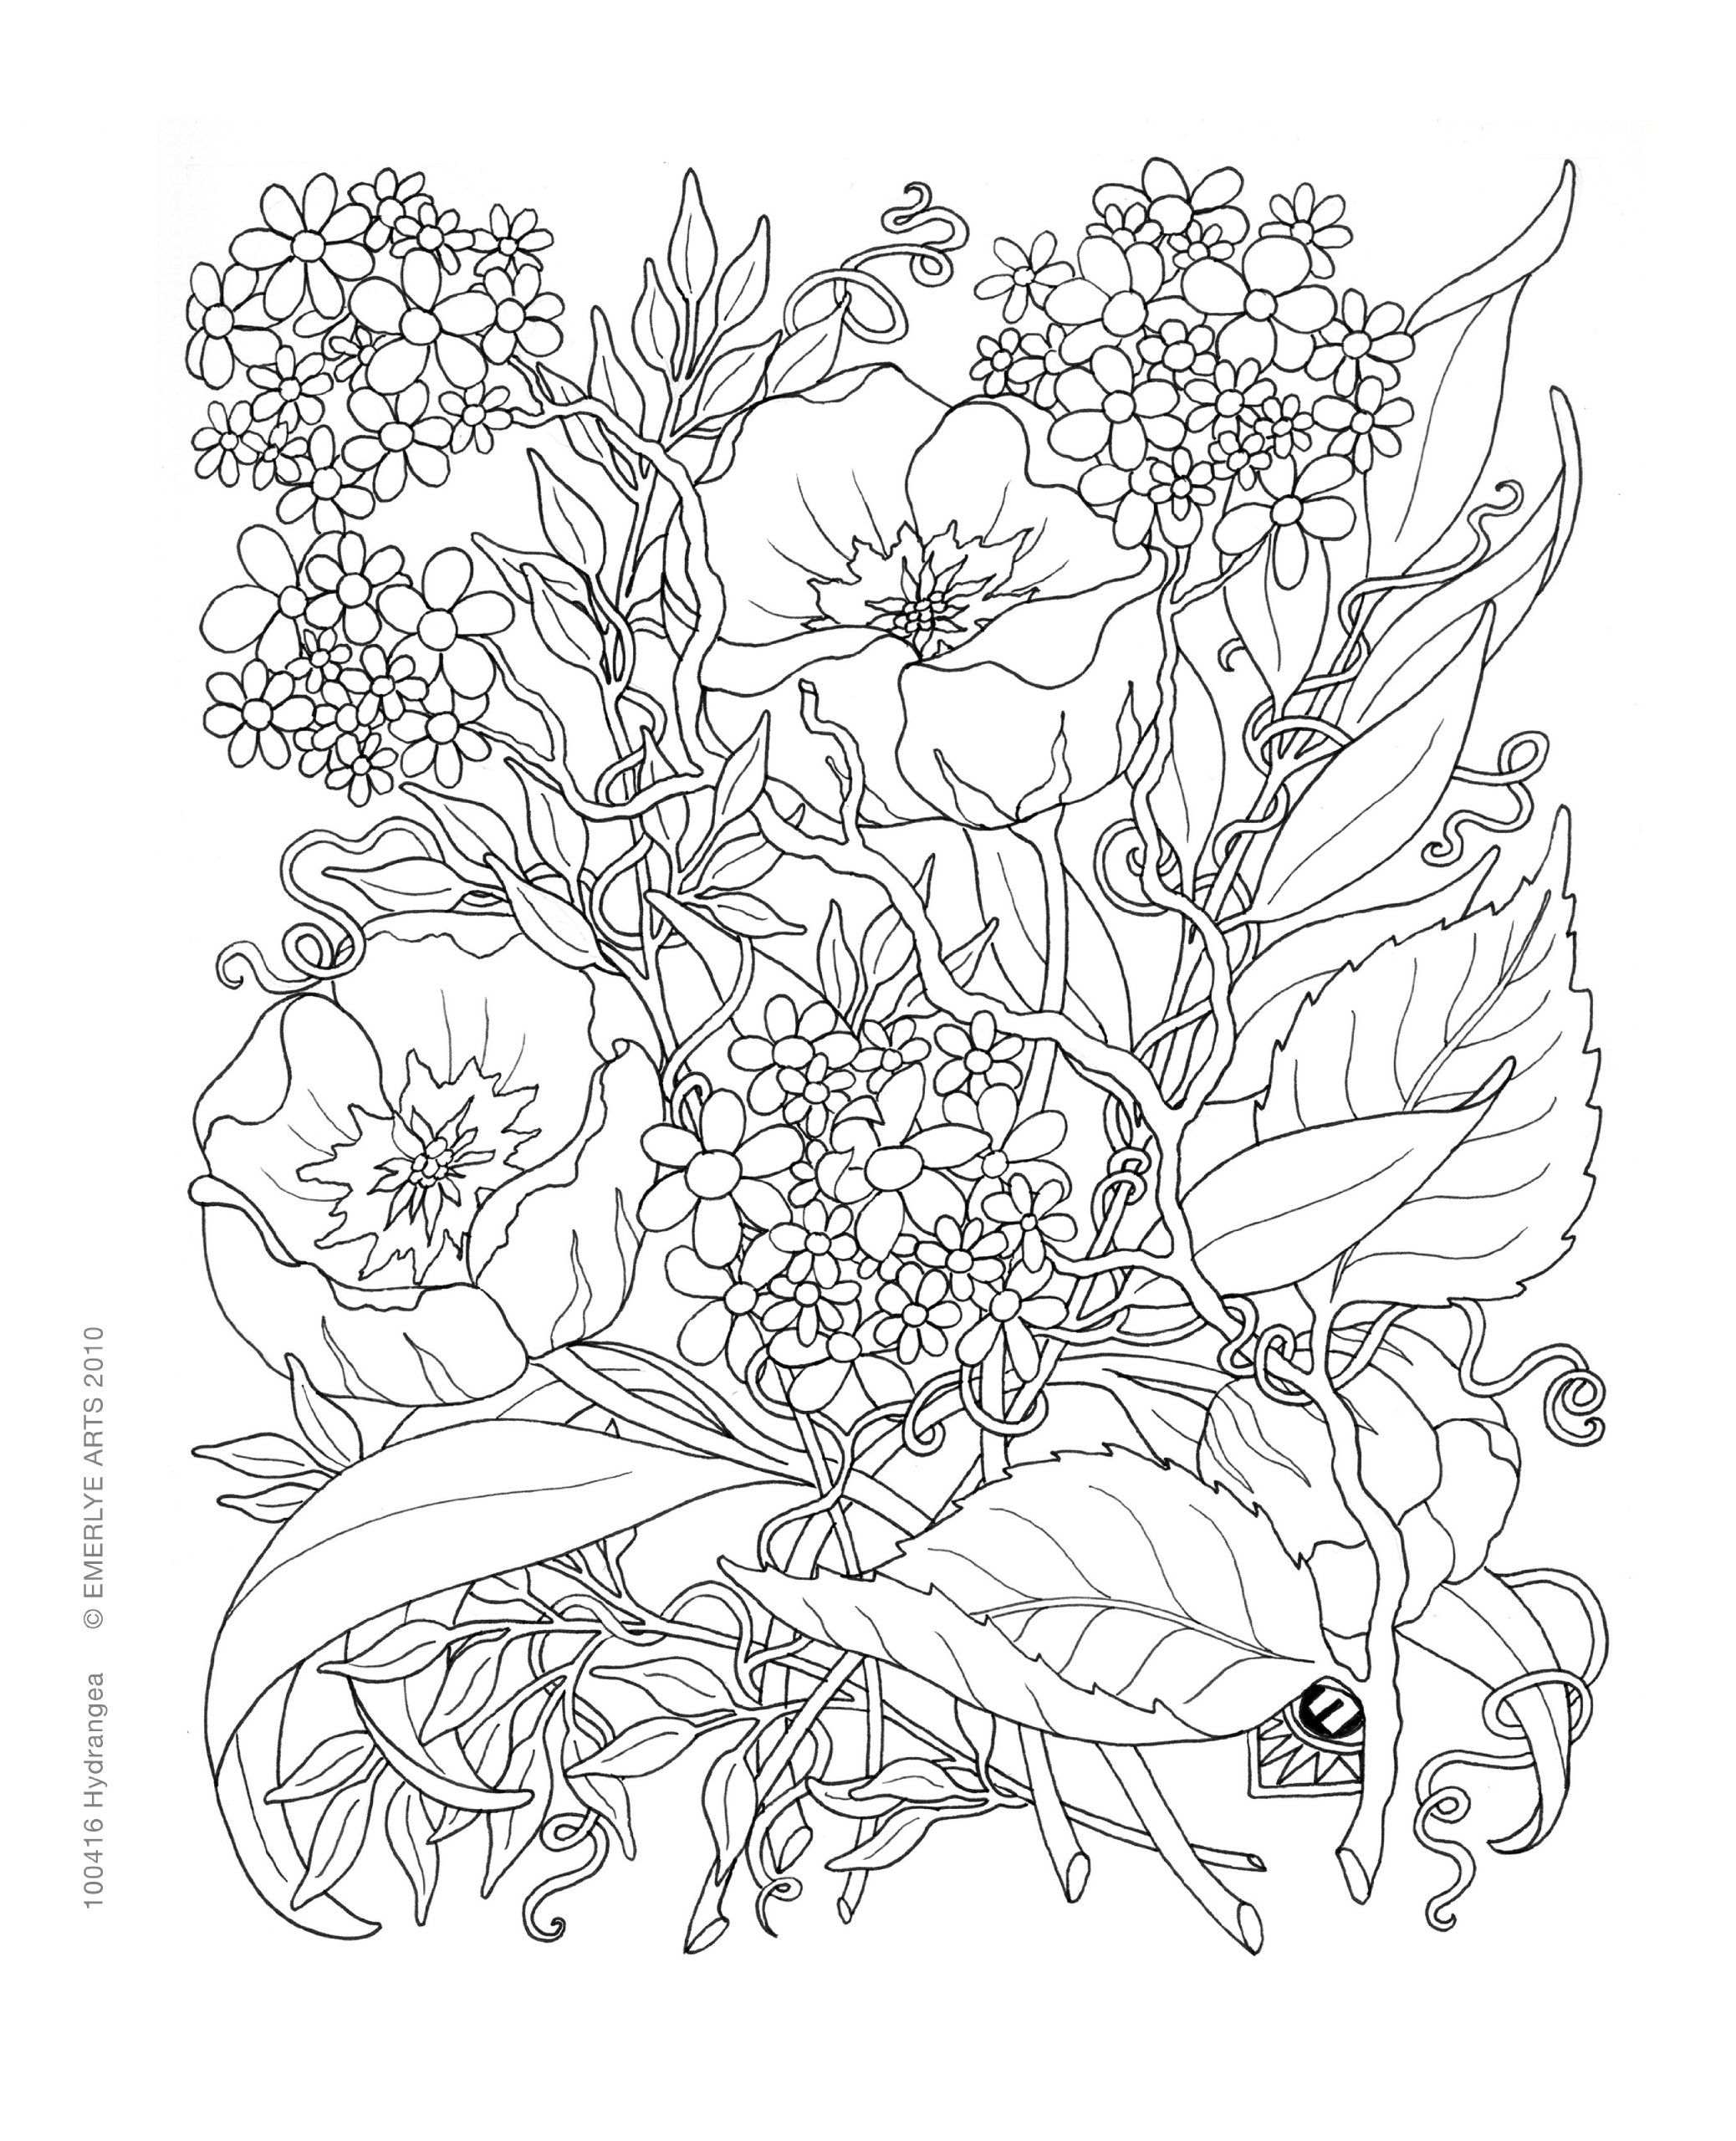 Secret Garden Free Coloring Pages At Getcolorings